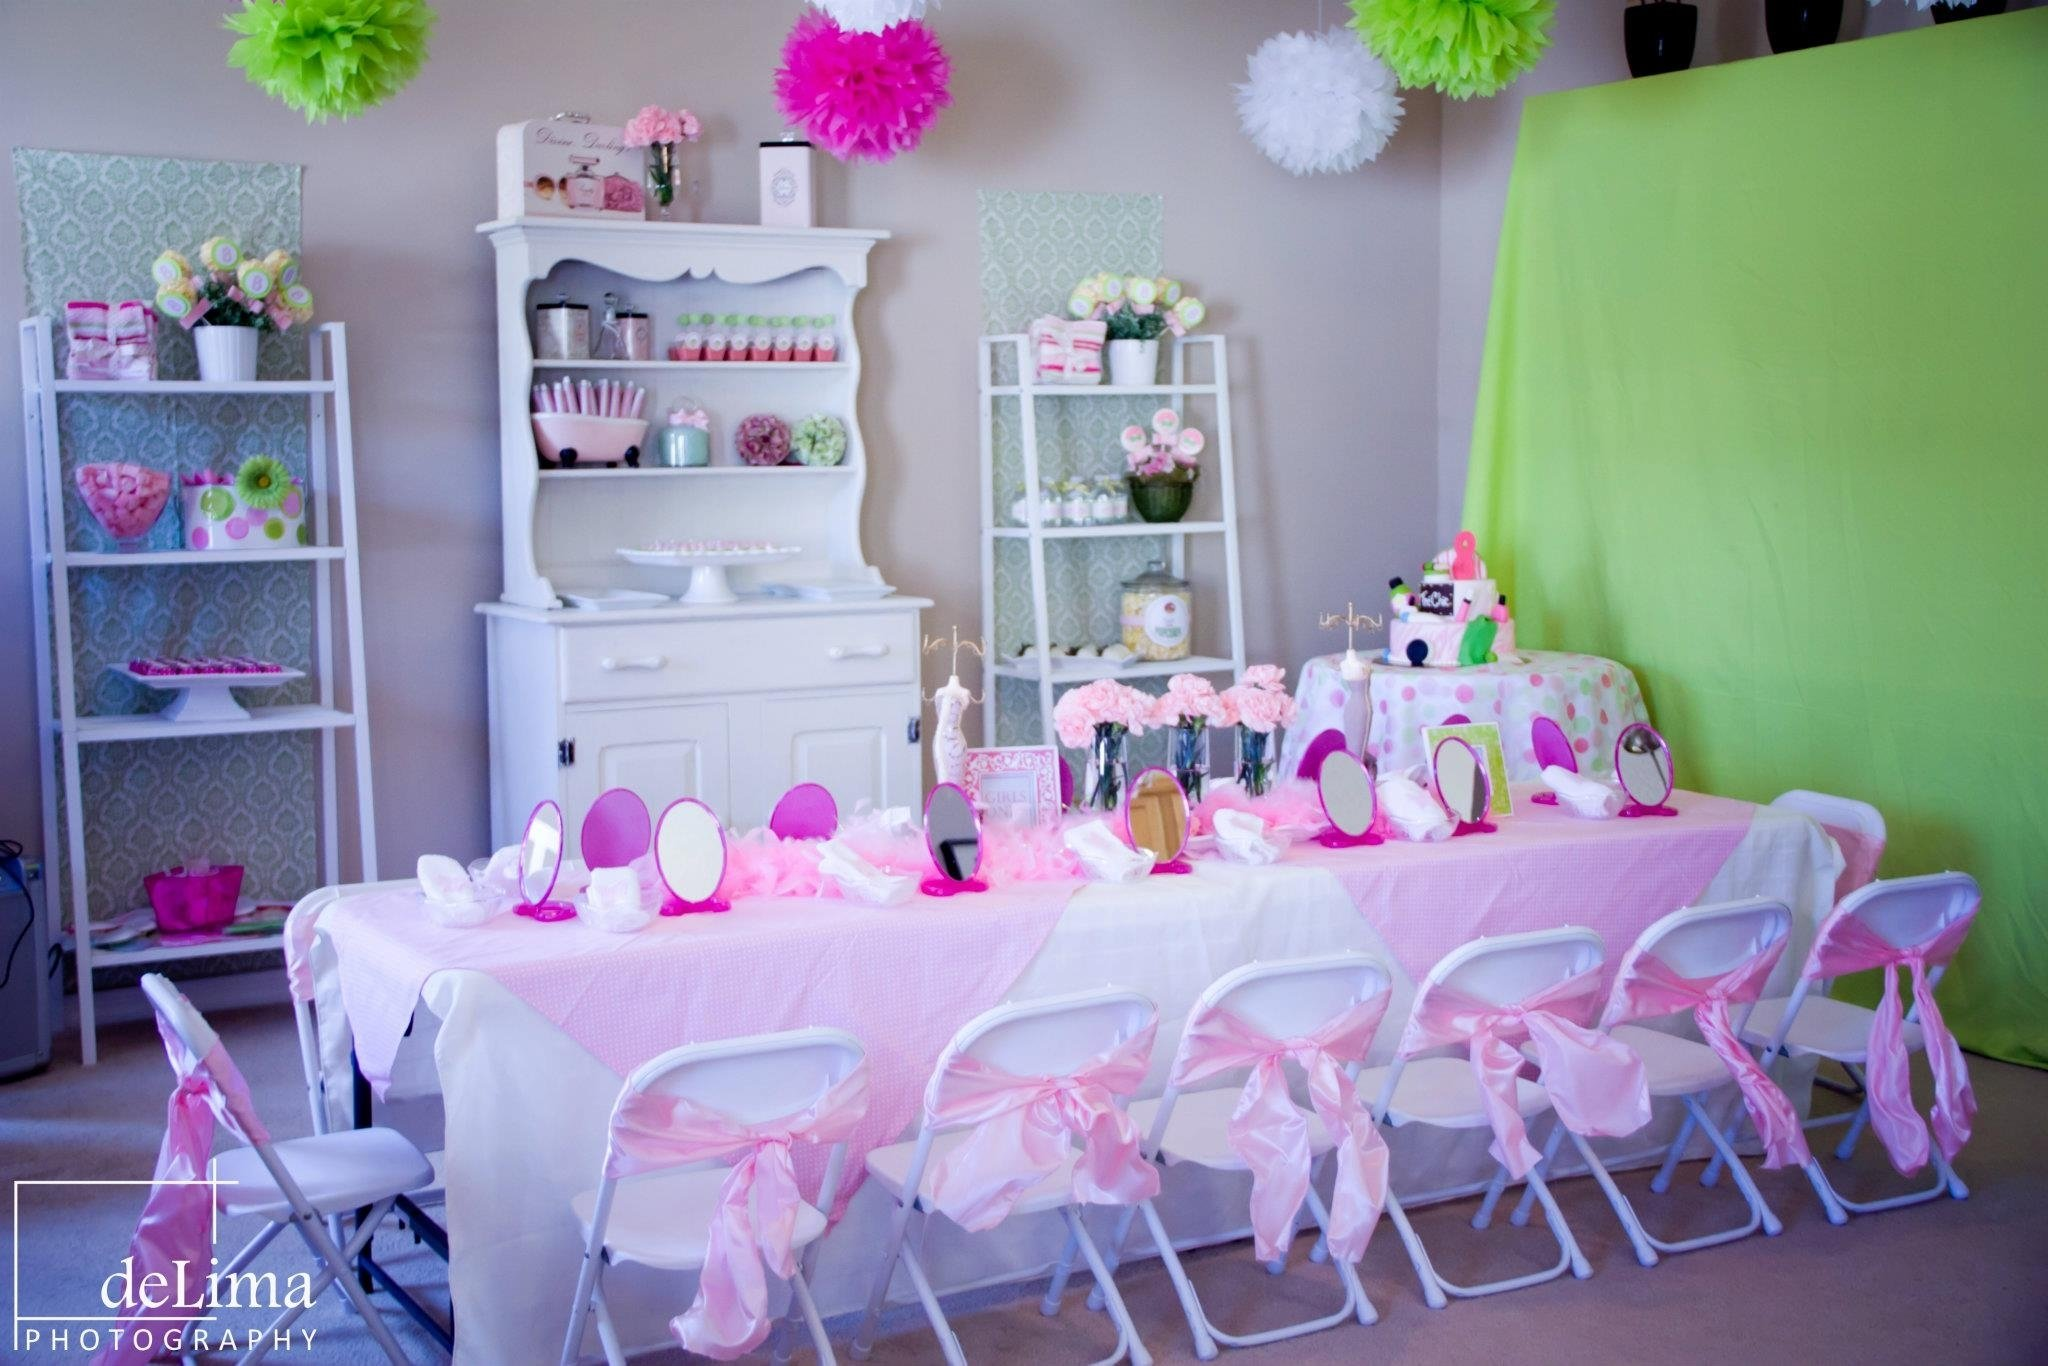 10 Most Popular Spa Party Ideas For Little Girls spa party ideas for girls hippojoys blog 1 2020